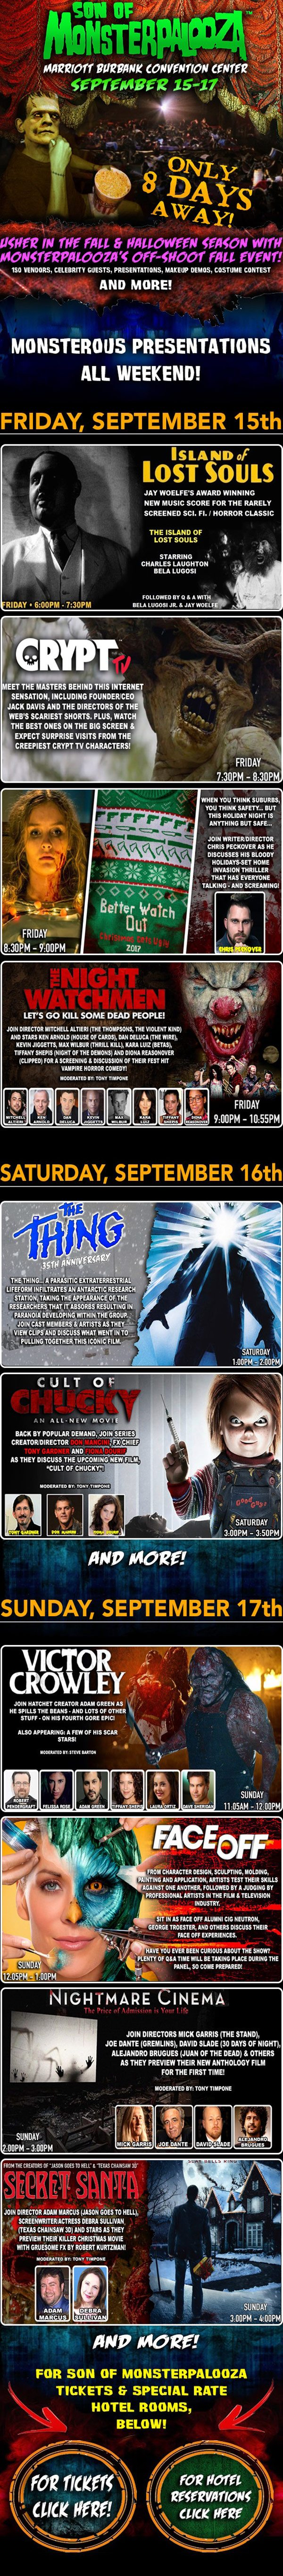 son of monsterpalooza 2017presentations - Son of Monsterpalooza Special Presentations Include Panels on Victor Crowley, Cult of Chucky, Mayhem, The Thing, The Exorcist, and LOTS More!